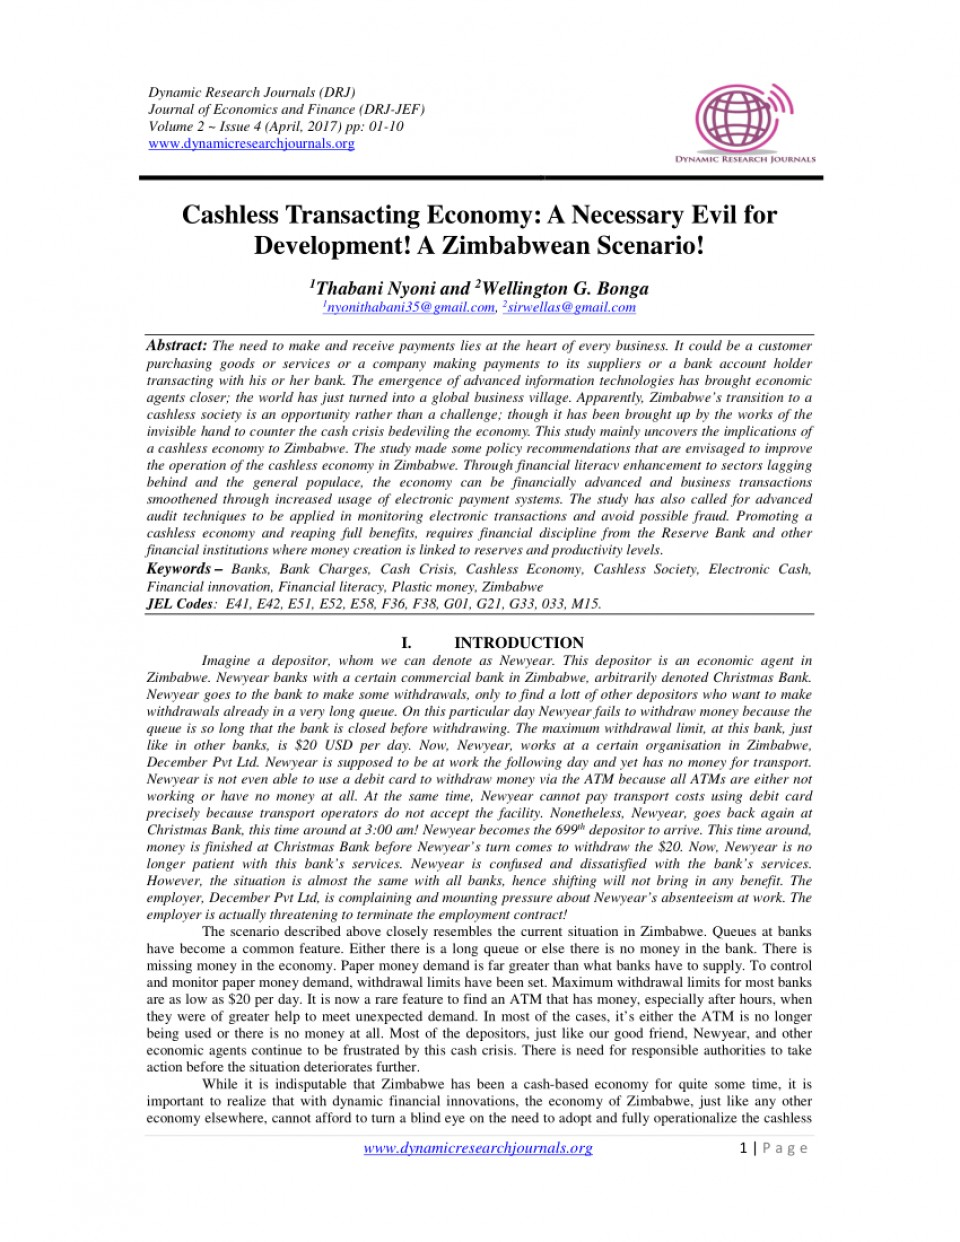 003 Largepreview Cash To Cashless Economy Research Rare Paper 960